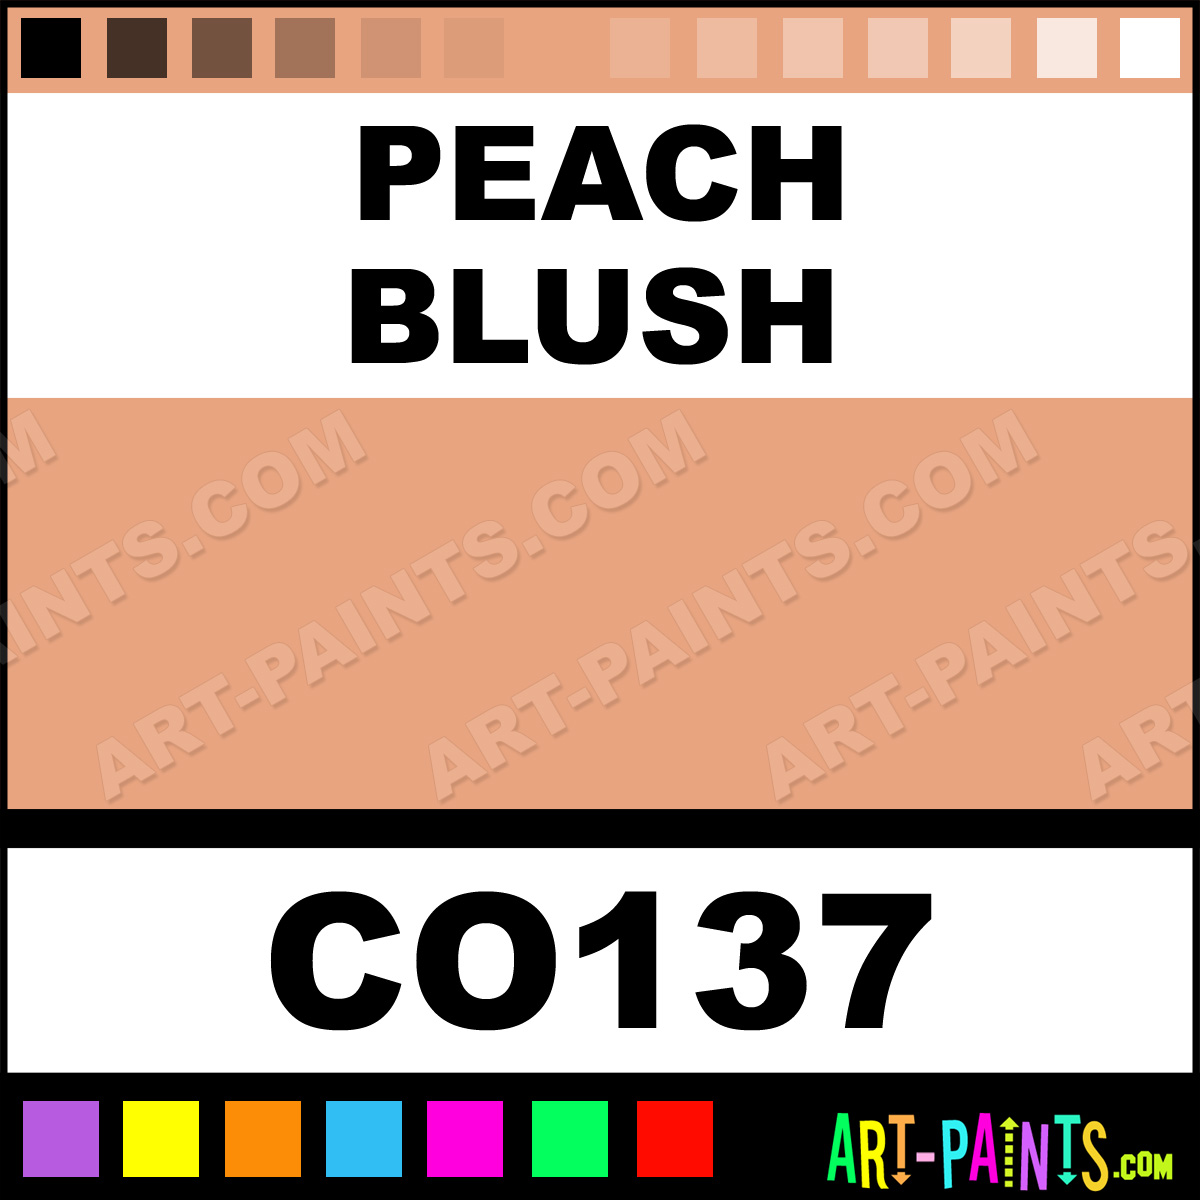 Peach Blush Bisque Ceramic Porcelain Paints - CO137 - Peach